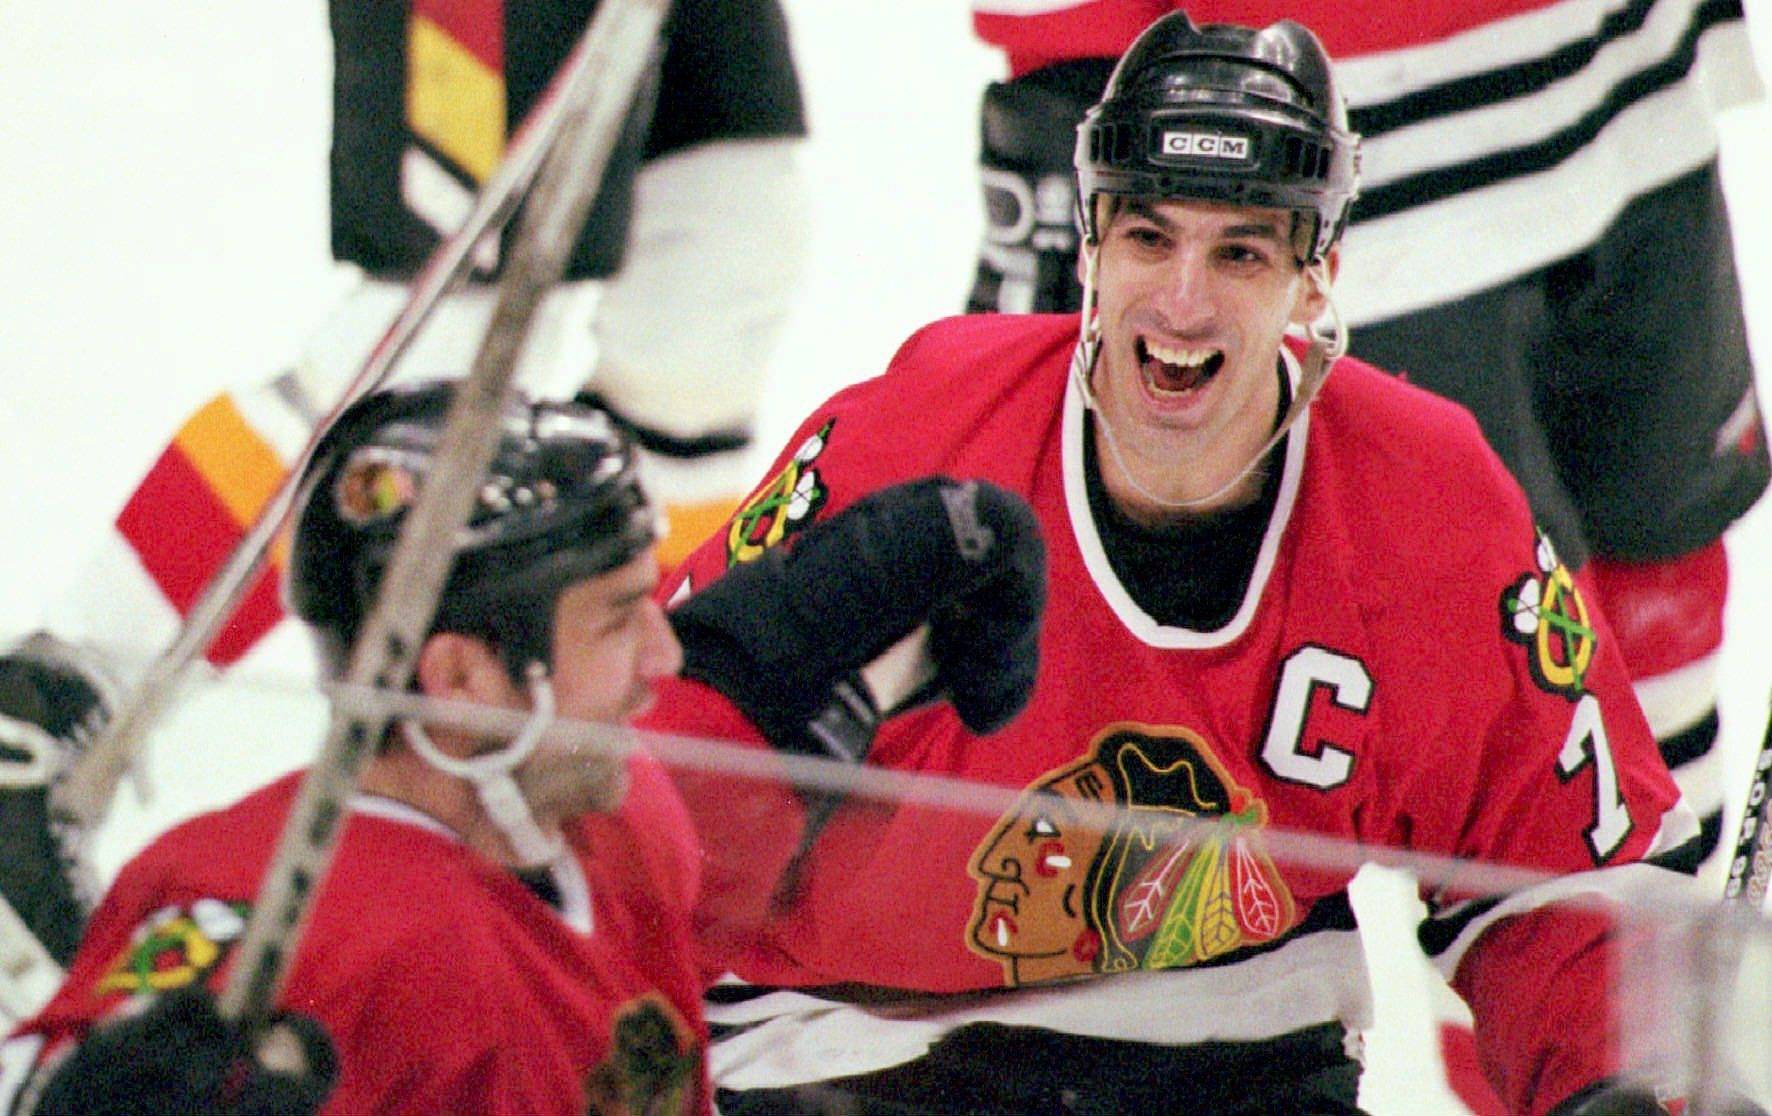 Chicago Blackhawks captain Chris Chelios congratulates teammate Joe Murphy after Murphy scored the game and series-winning goal for the Blackhawks against the Calgary Flames in this April 24, 1996 file photo.